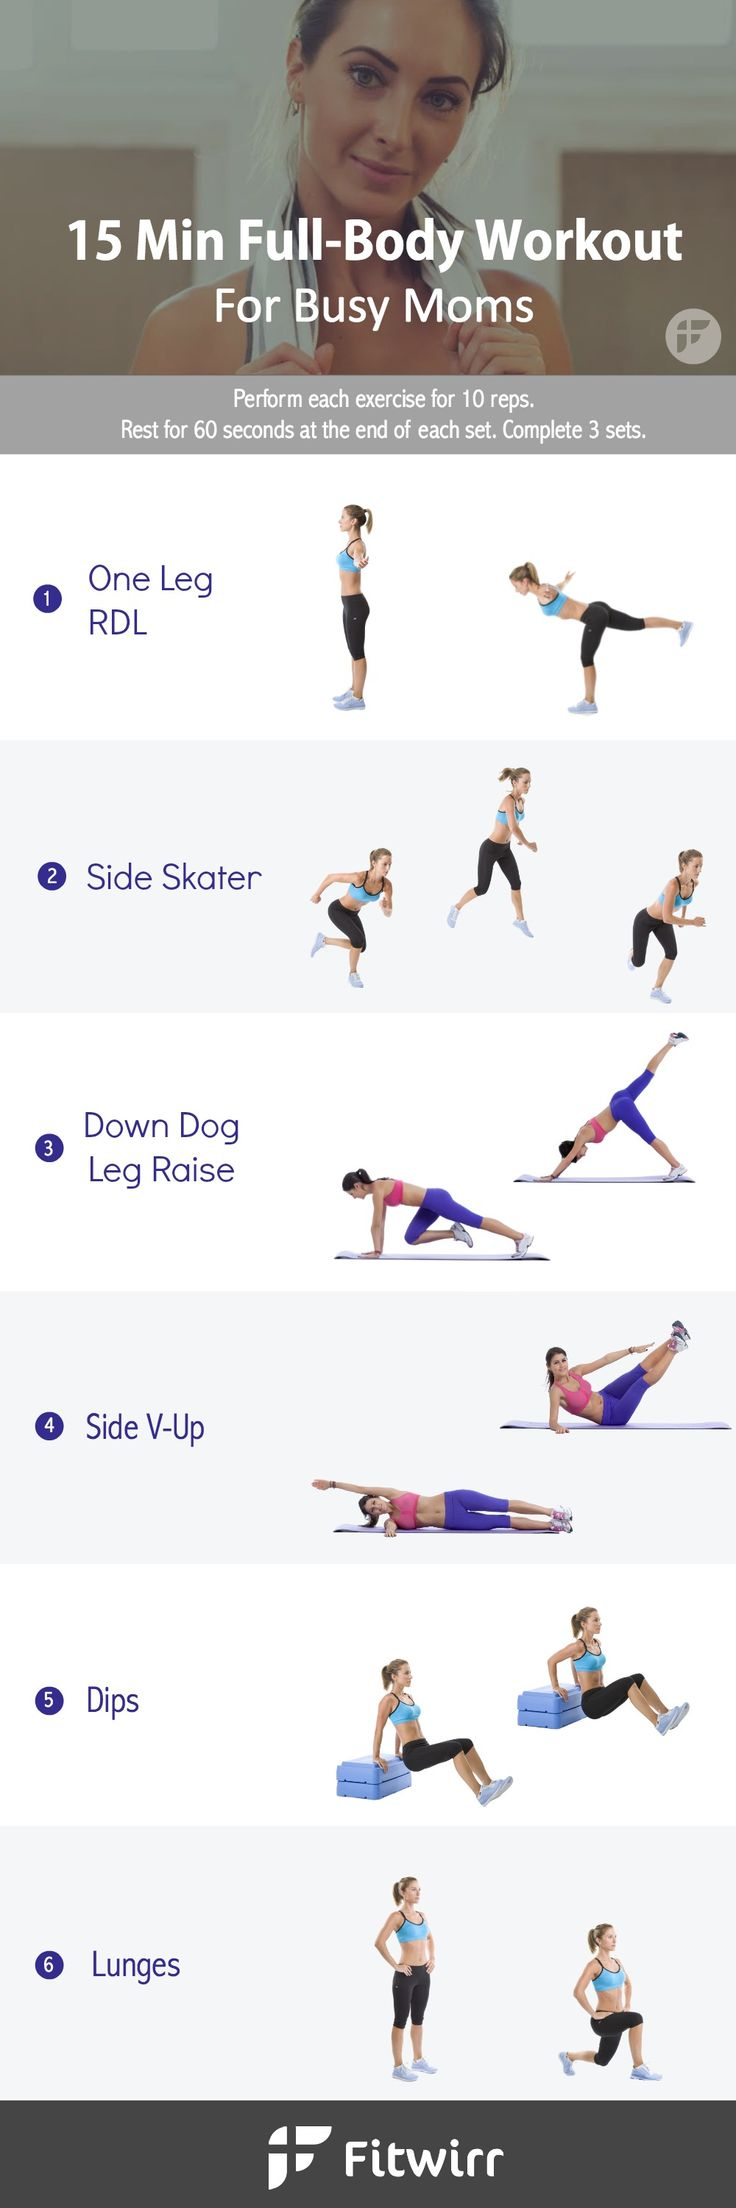 Don't have time for the gym? You don't need abundance of time or resources to get in shape and stay fit. Squeeze in this 15-minute fat-burning, calorie-crushing workout that whip your body into shape.